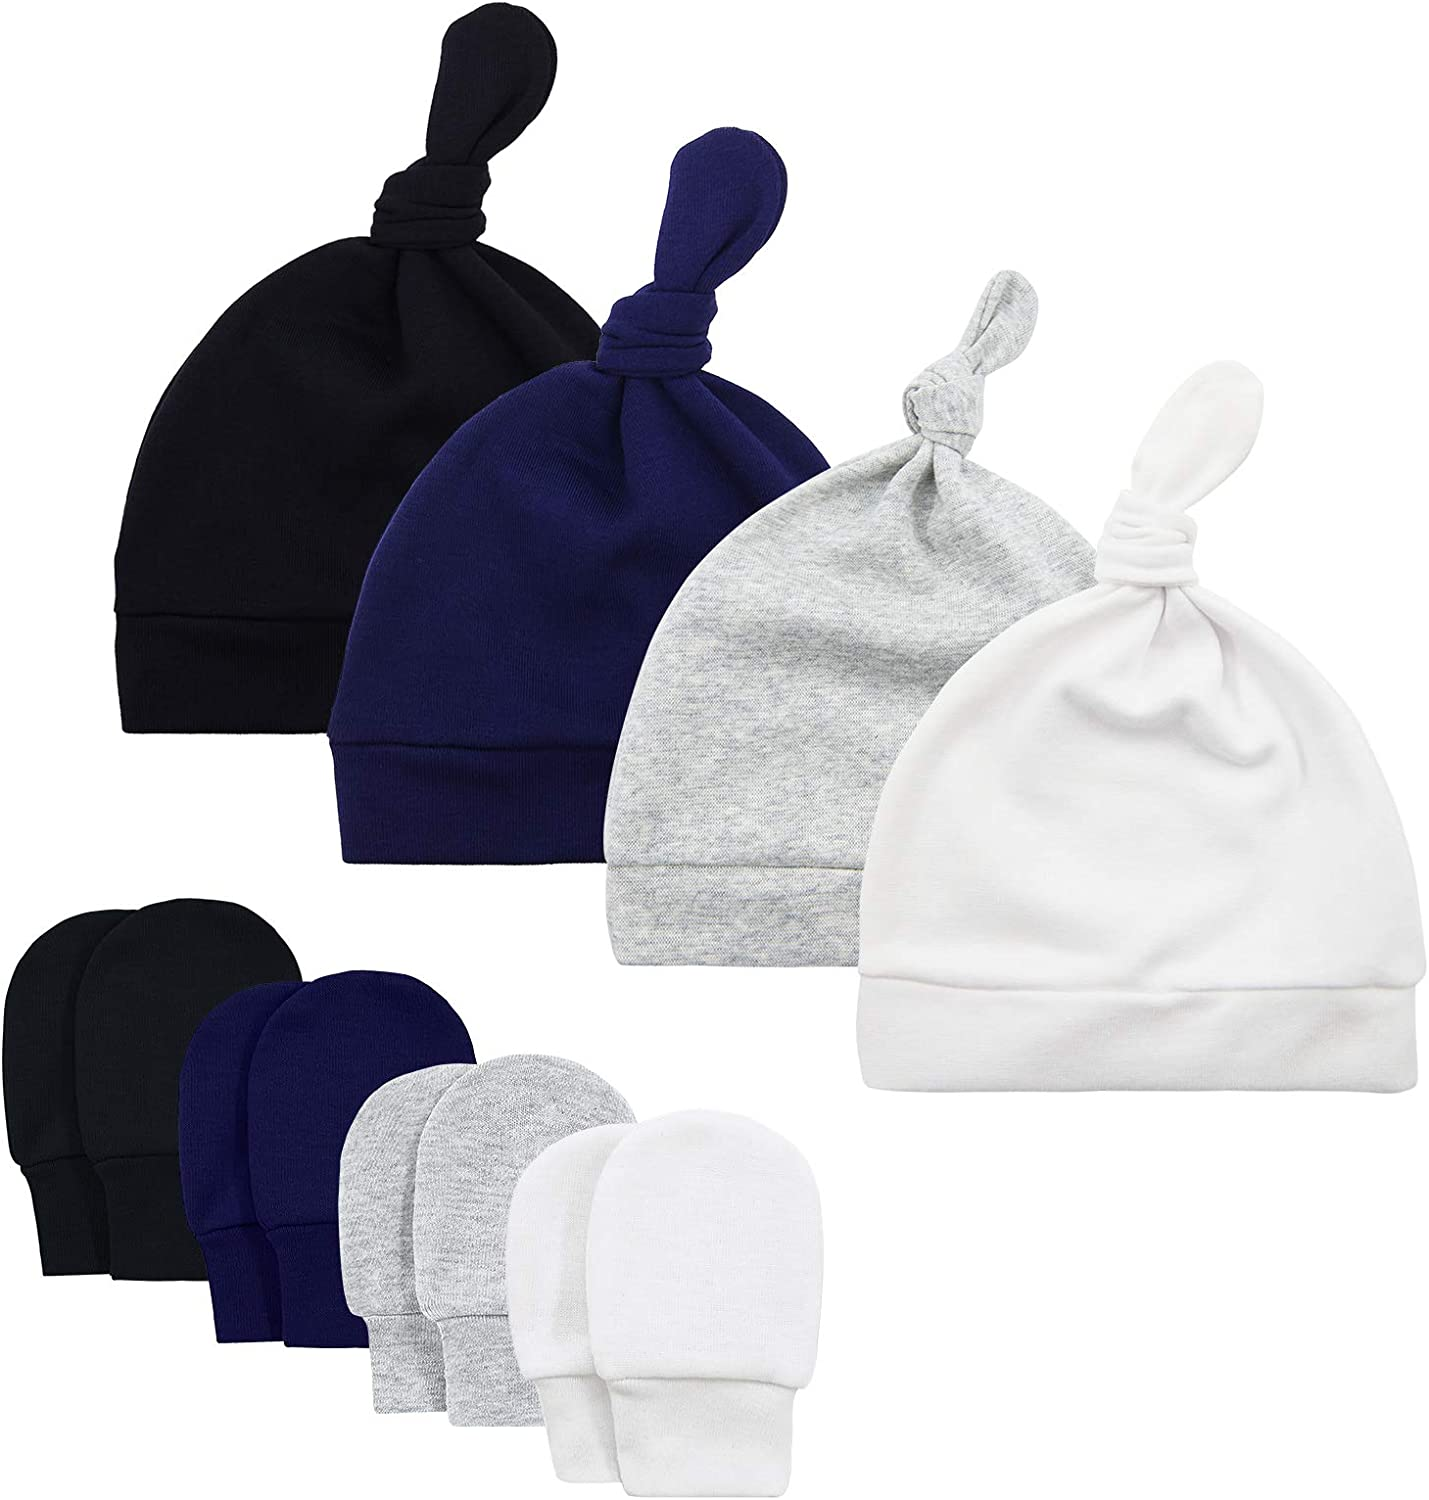 American Trends Baby Hat Mittens Newborn Hats for Boys Baby Hats 0-6 Months Winter Beanie Caps